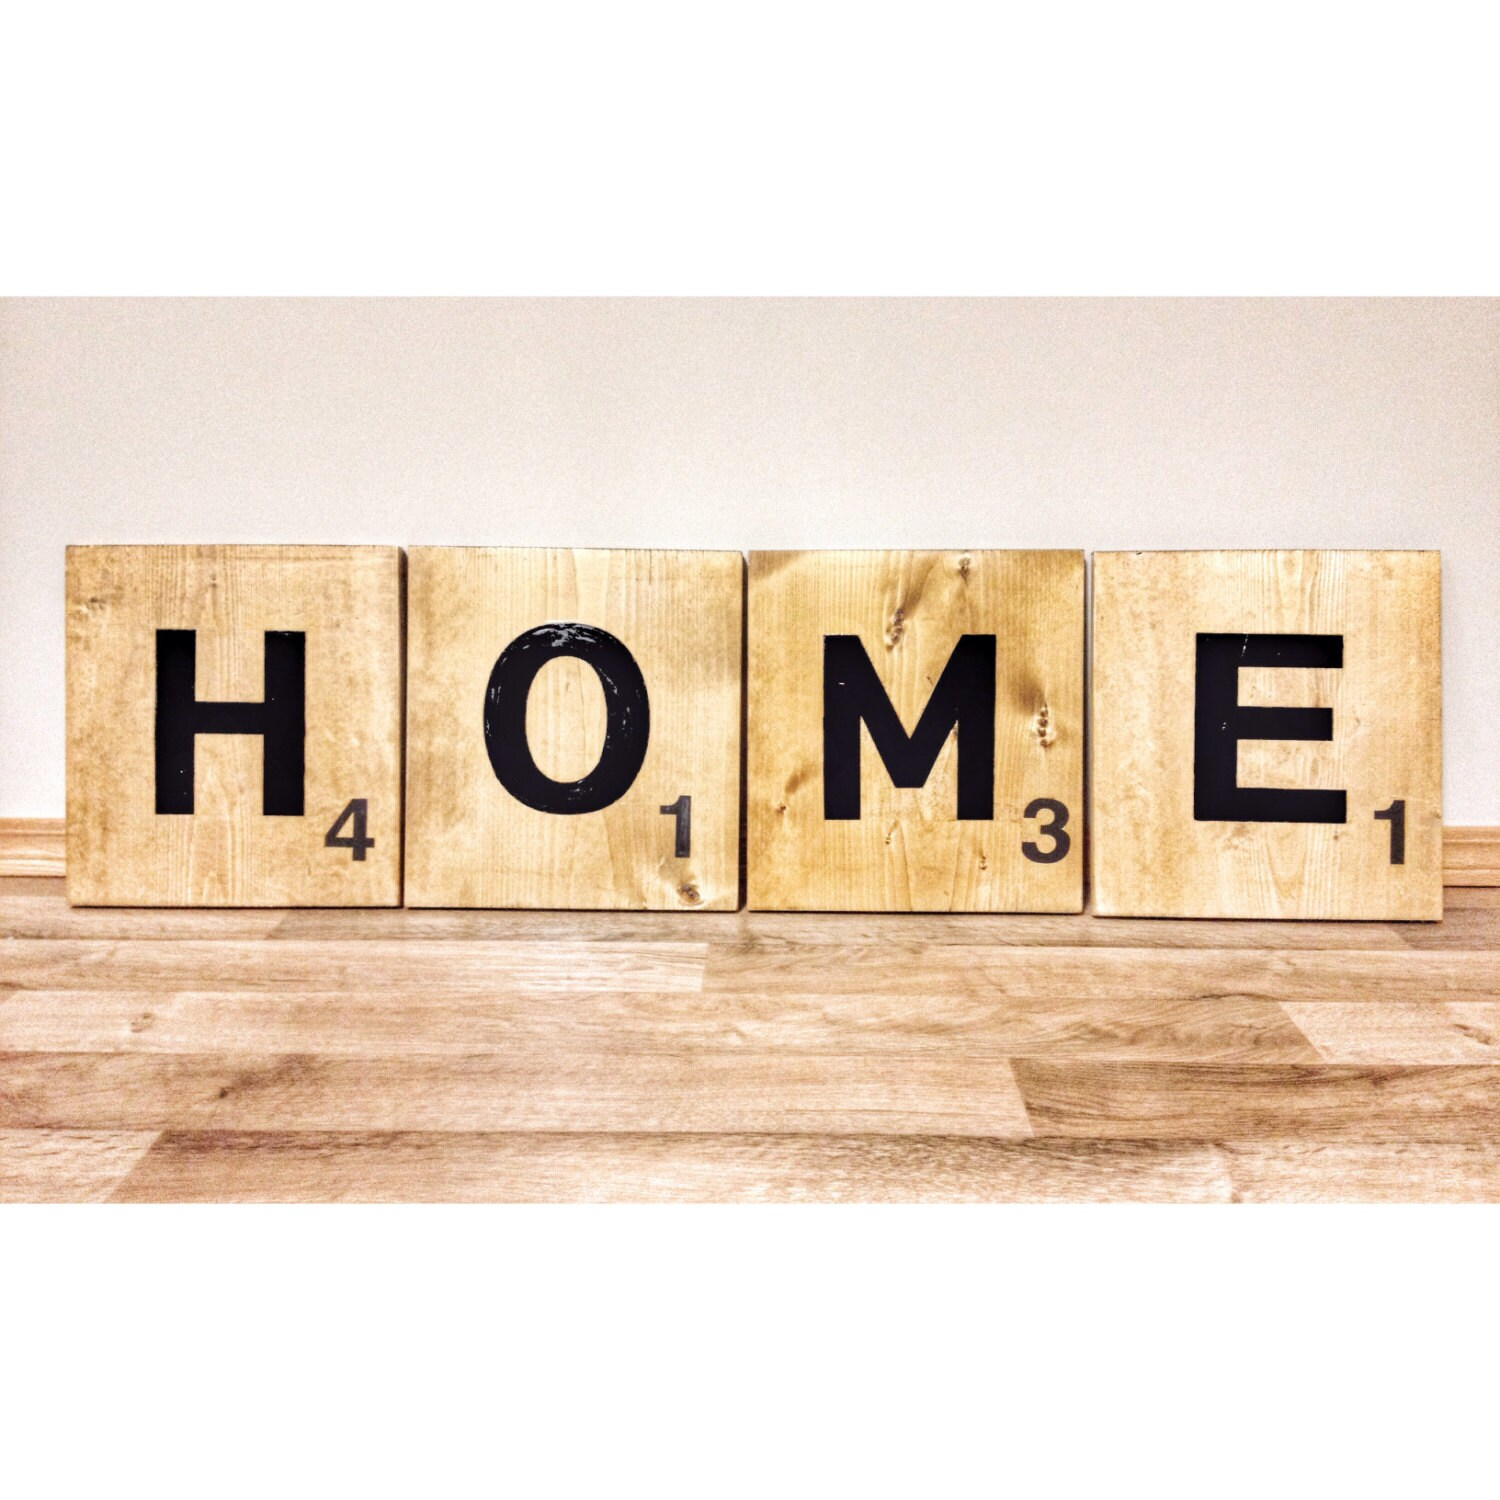 12 Giant Jumbo Scrabble Tile Letters HOME wooden wall decor sign ...